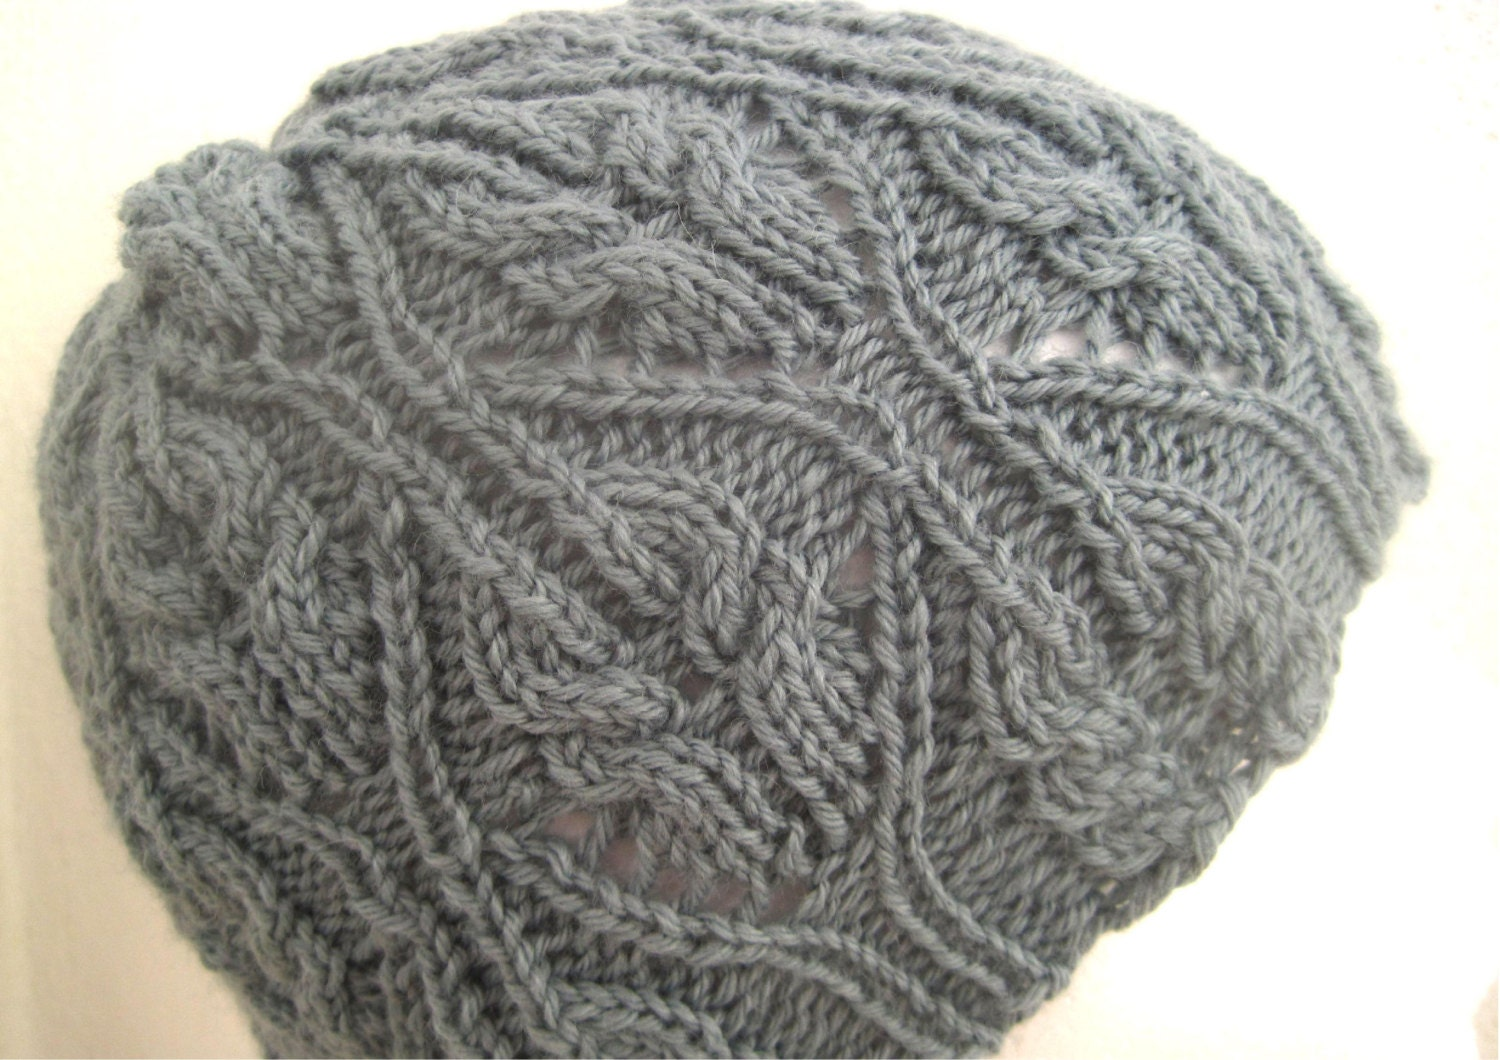 Ruched Cowl Knitting Pattern : The Cosy Cables Collection E-Book- Hats & Cowls knitting patterns - Insta...